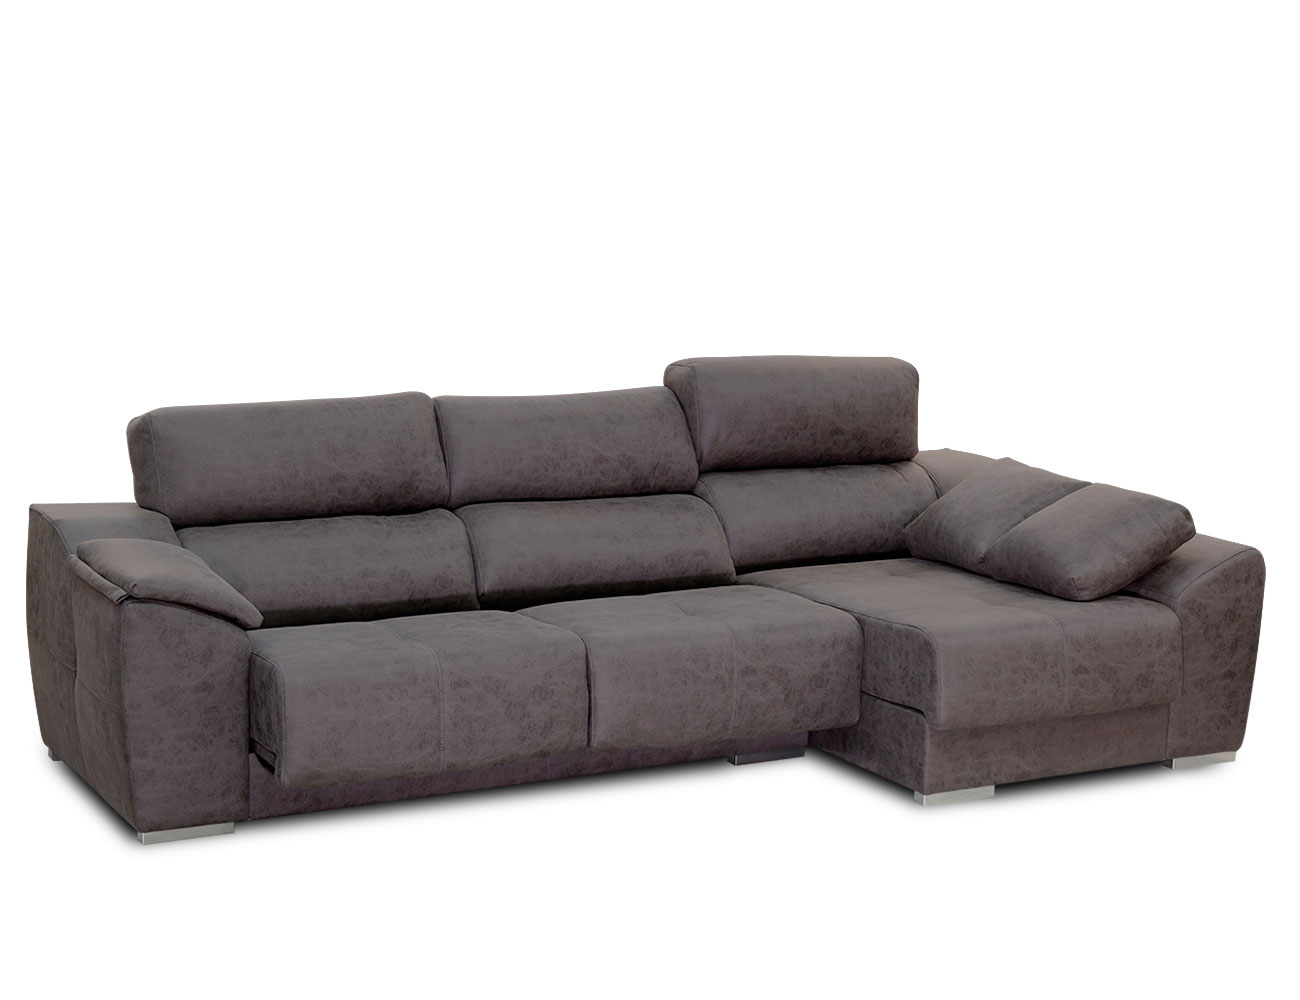 Sofa chaiselongue pared 0 magnolia plomo 3